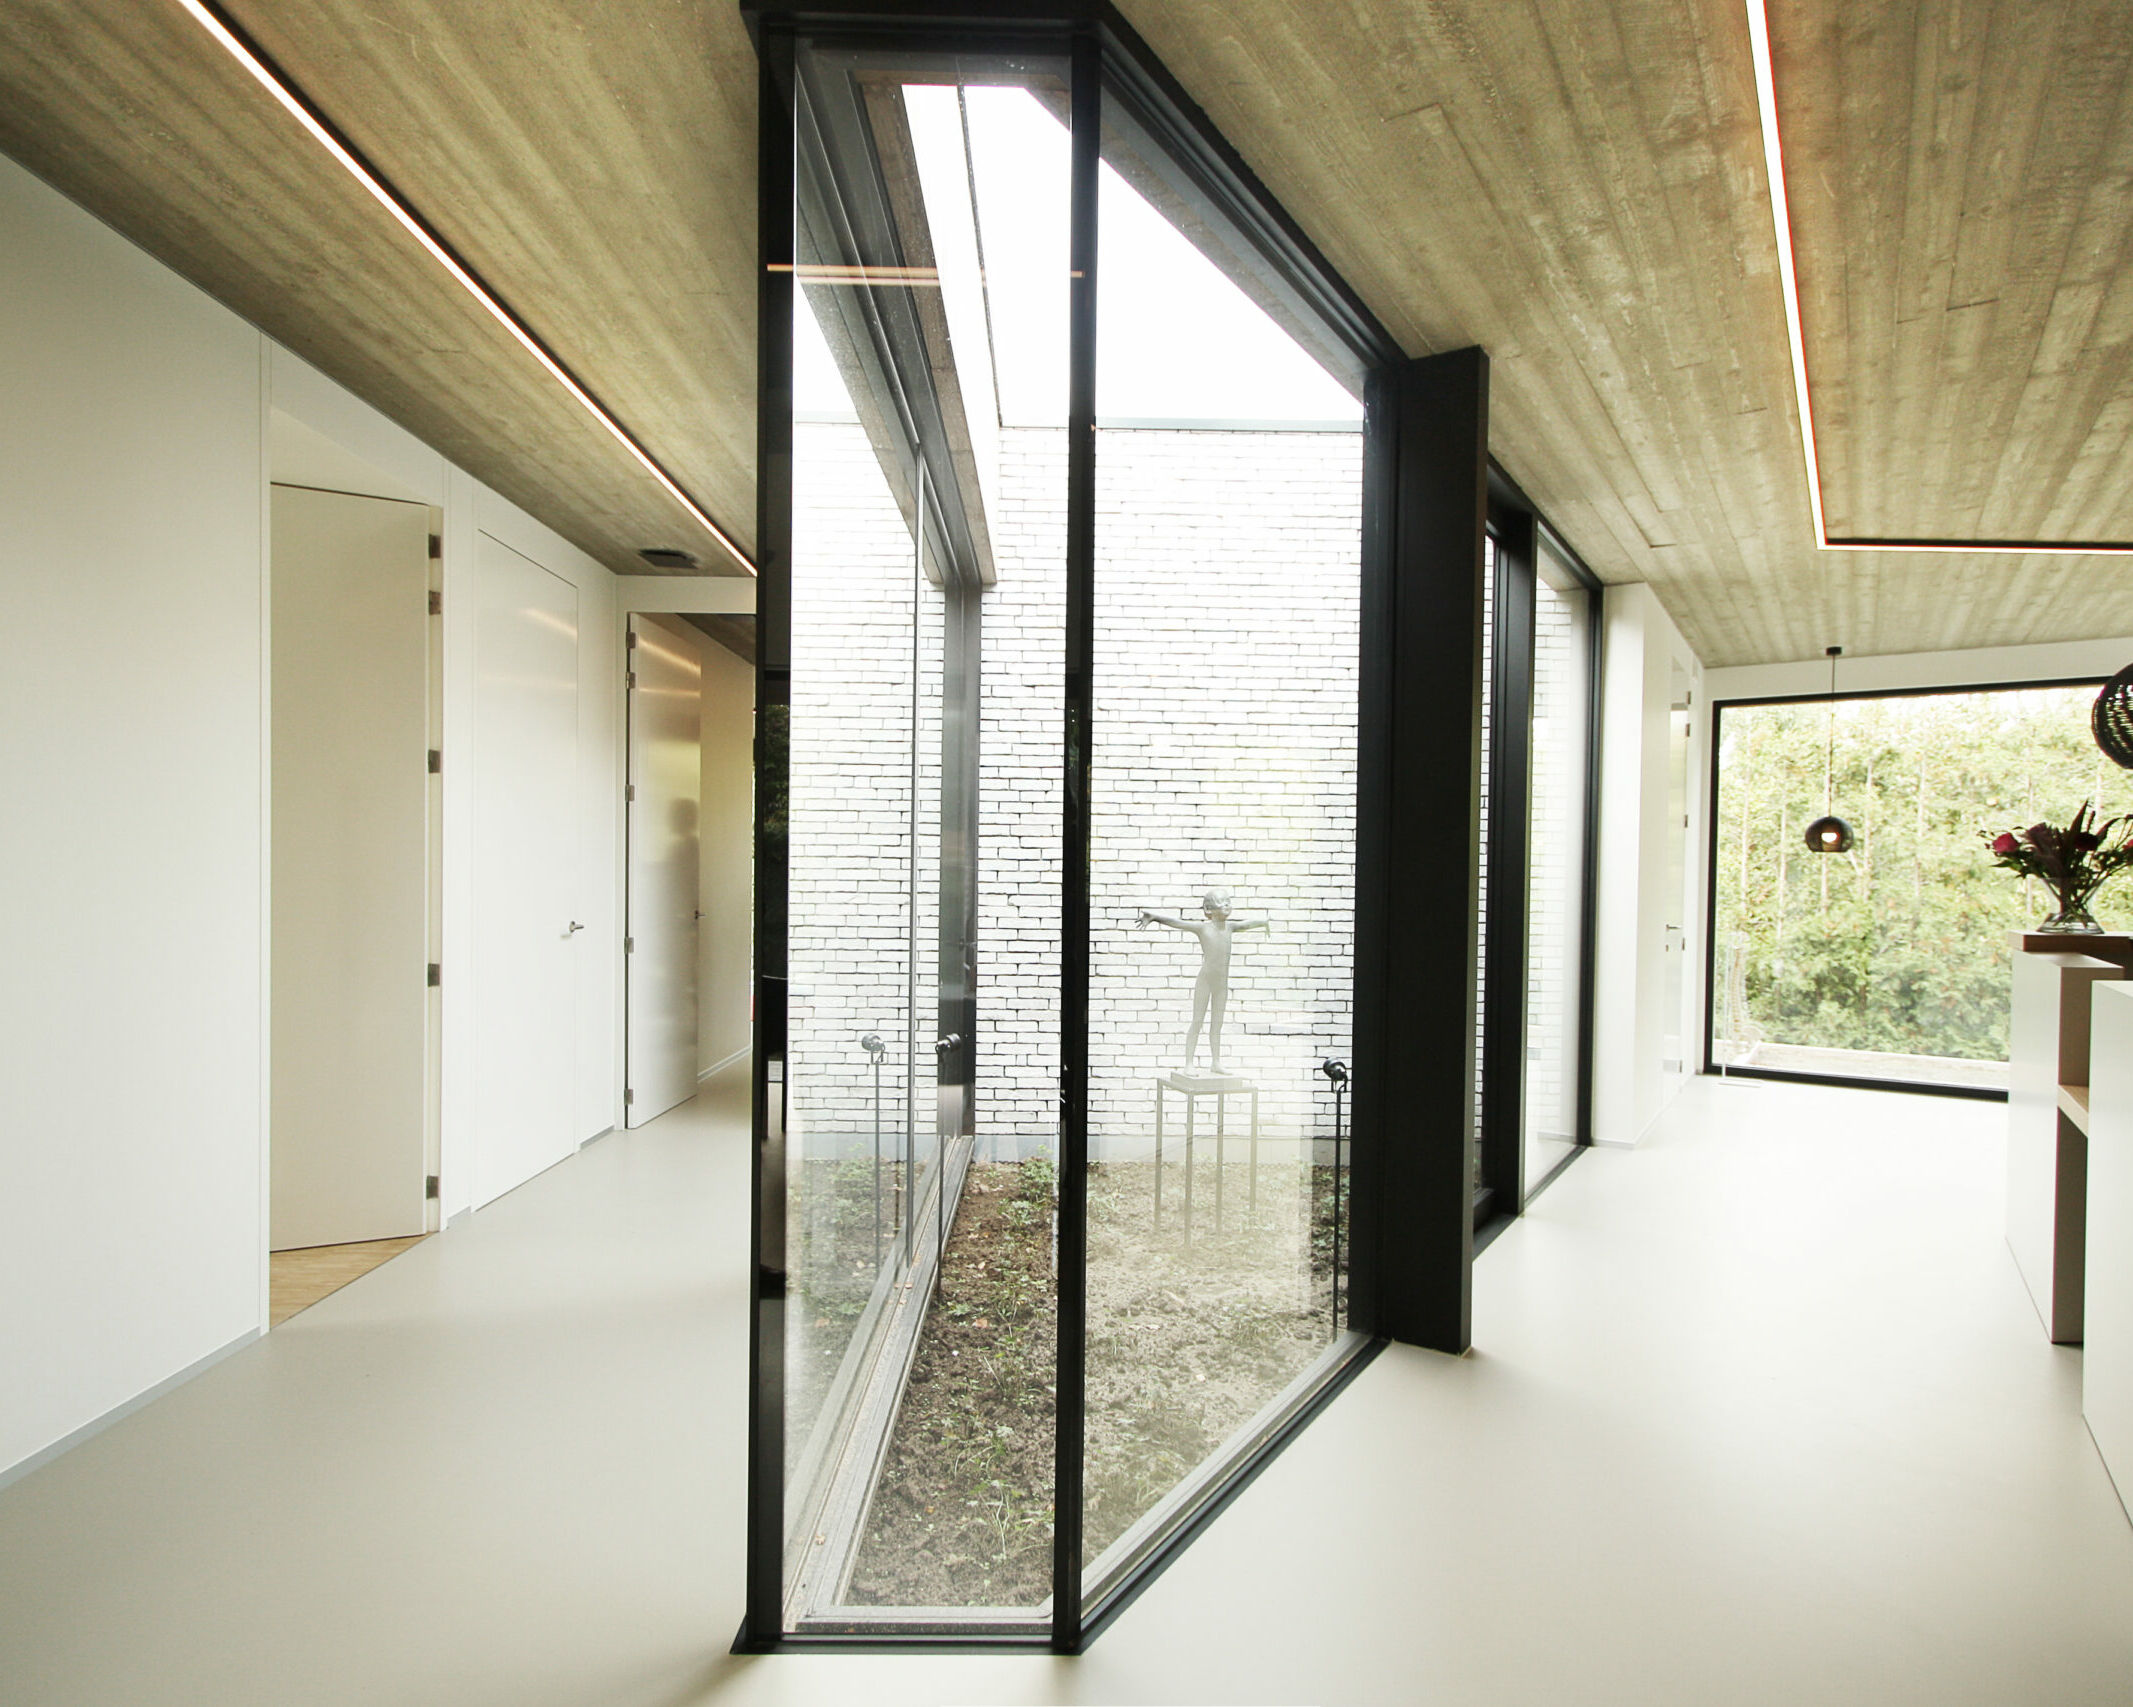 IMG 3466 scaled uai | Baeyens & Beck architecten Gent | architect nieuwbouw renovatie interieur | high end | architectenbureau